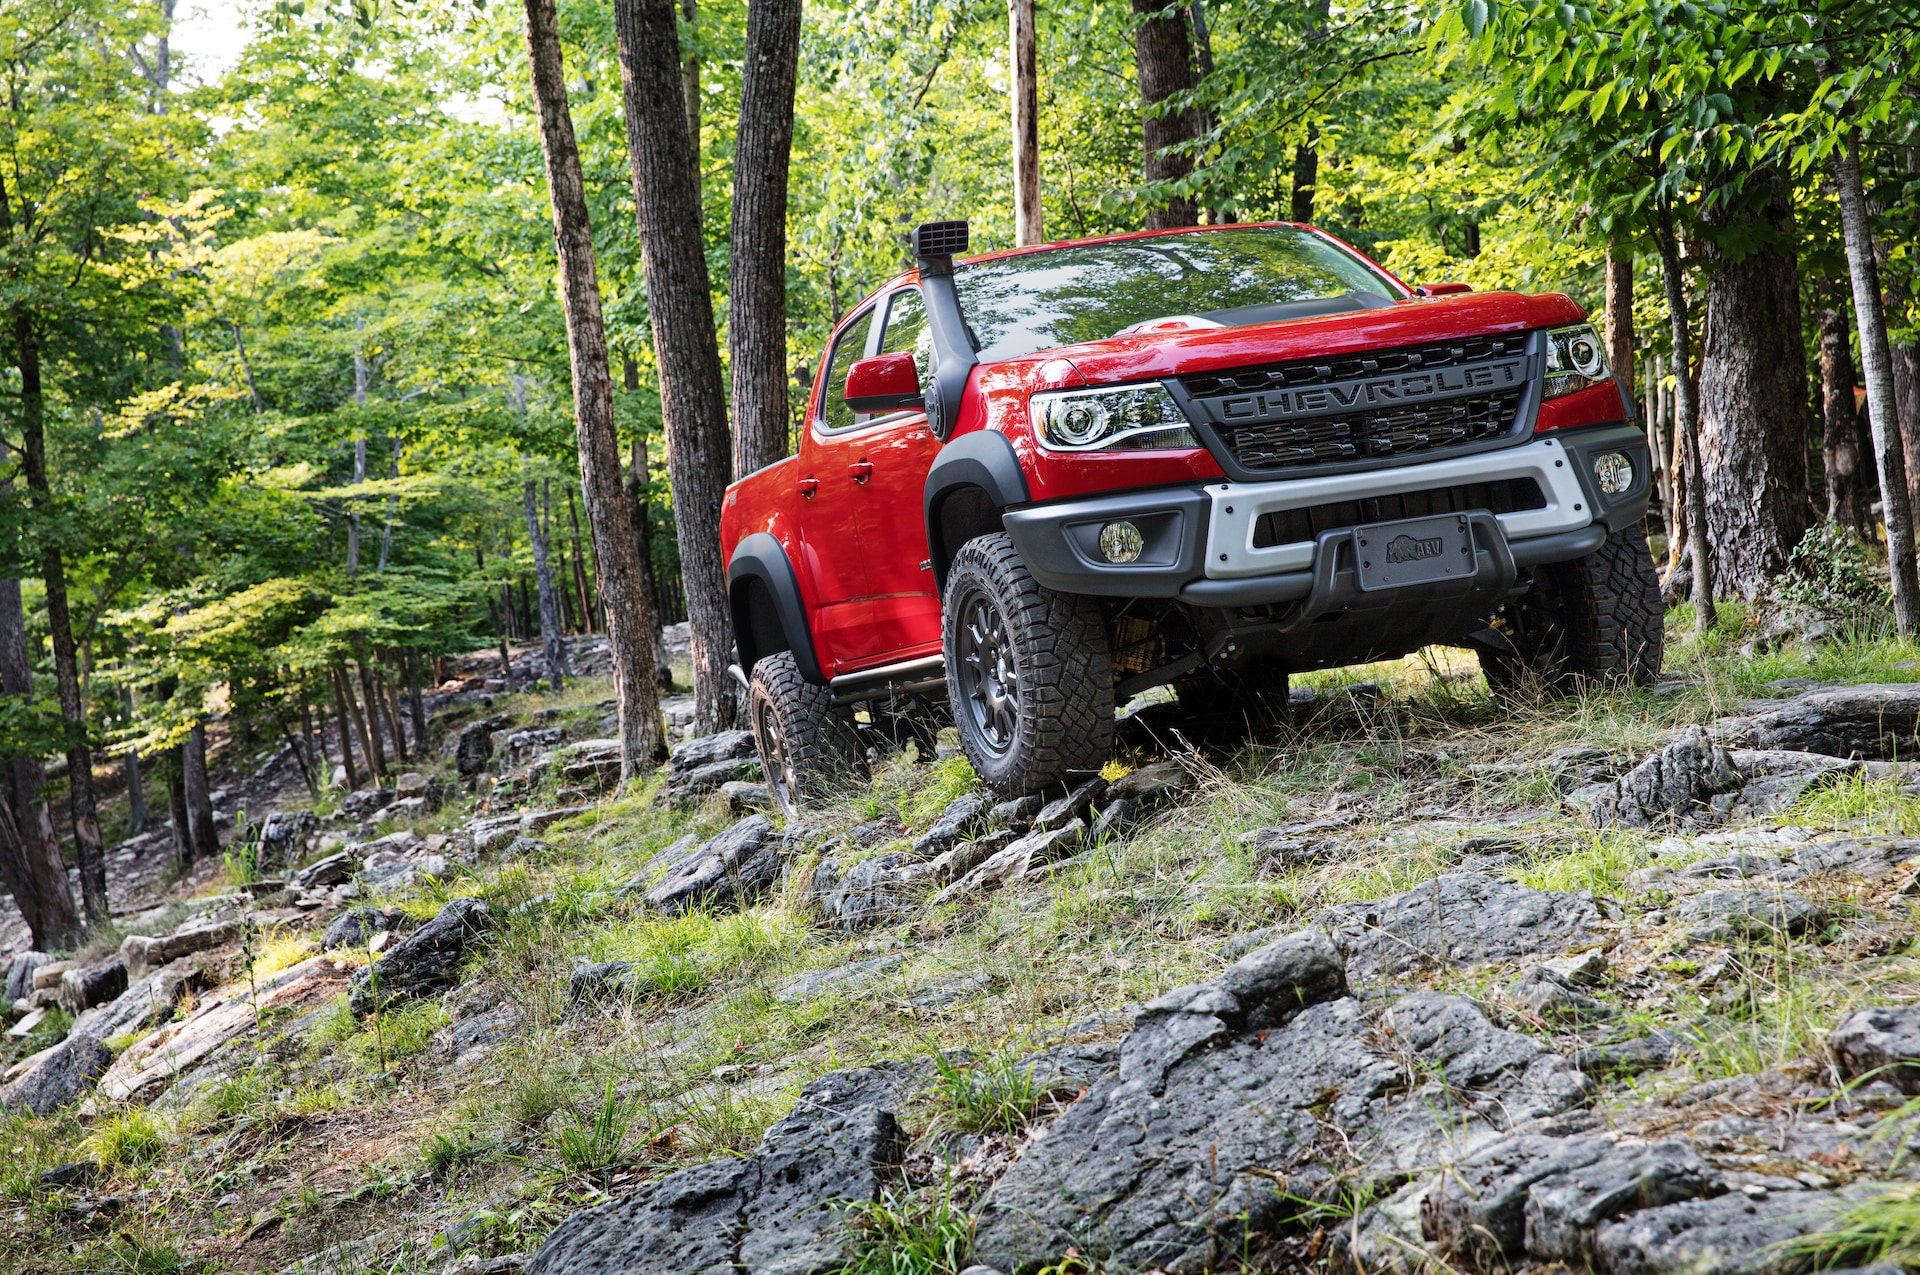 Chevrolet of New Bern is a Car Dealership in New Bern near Grantsboro NC | Red 2020 Chevrolet Colorado driving off road in the woods